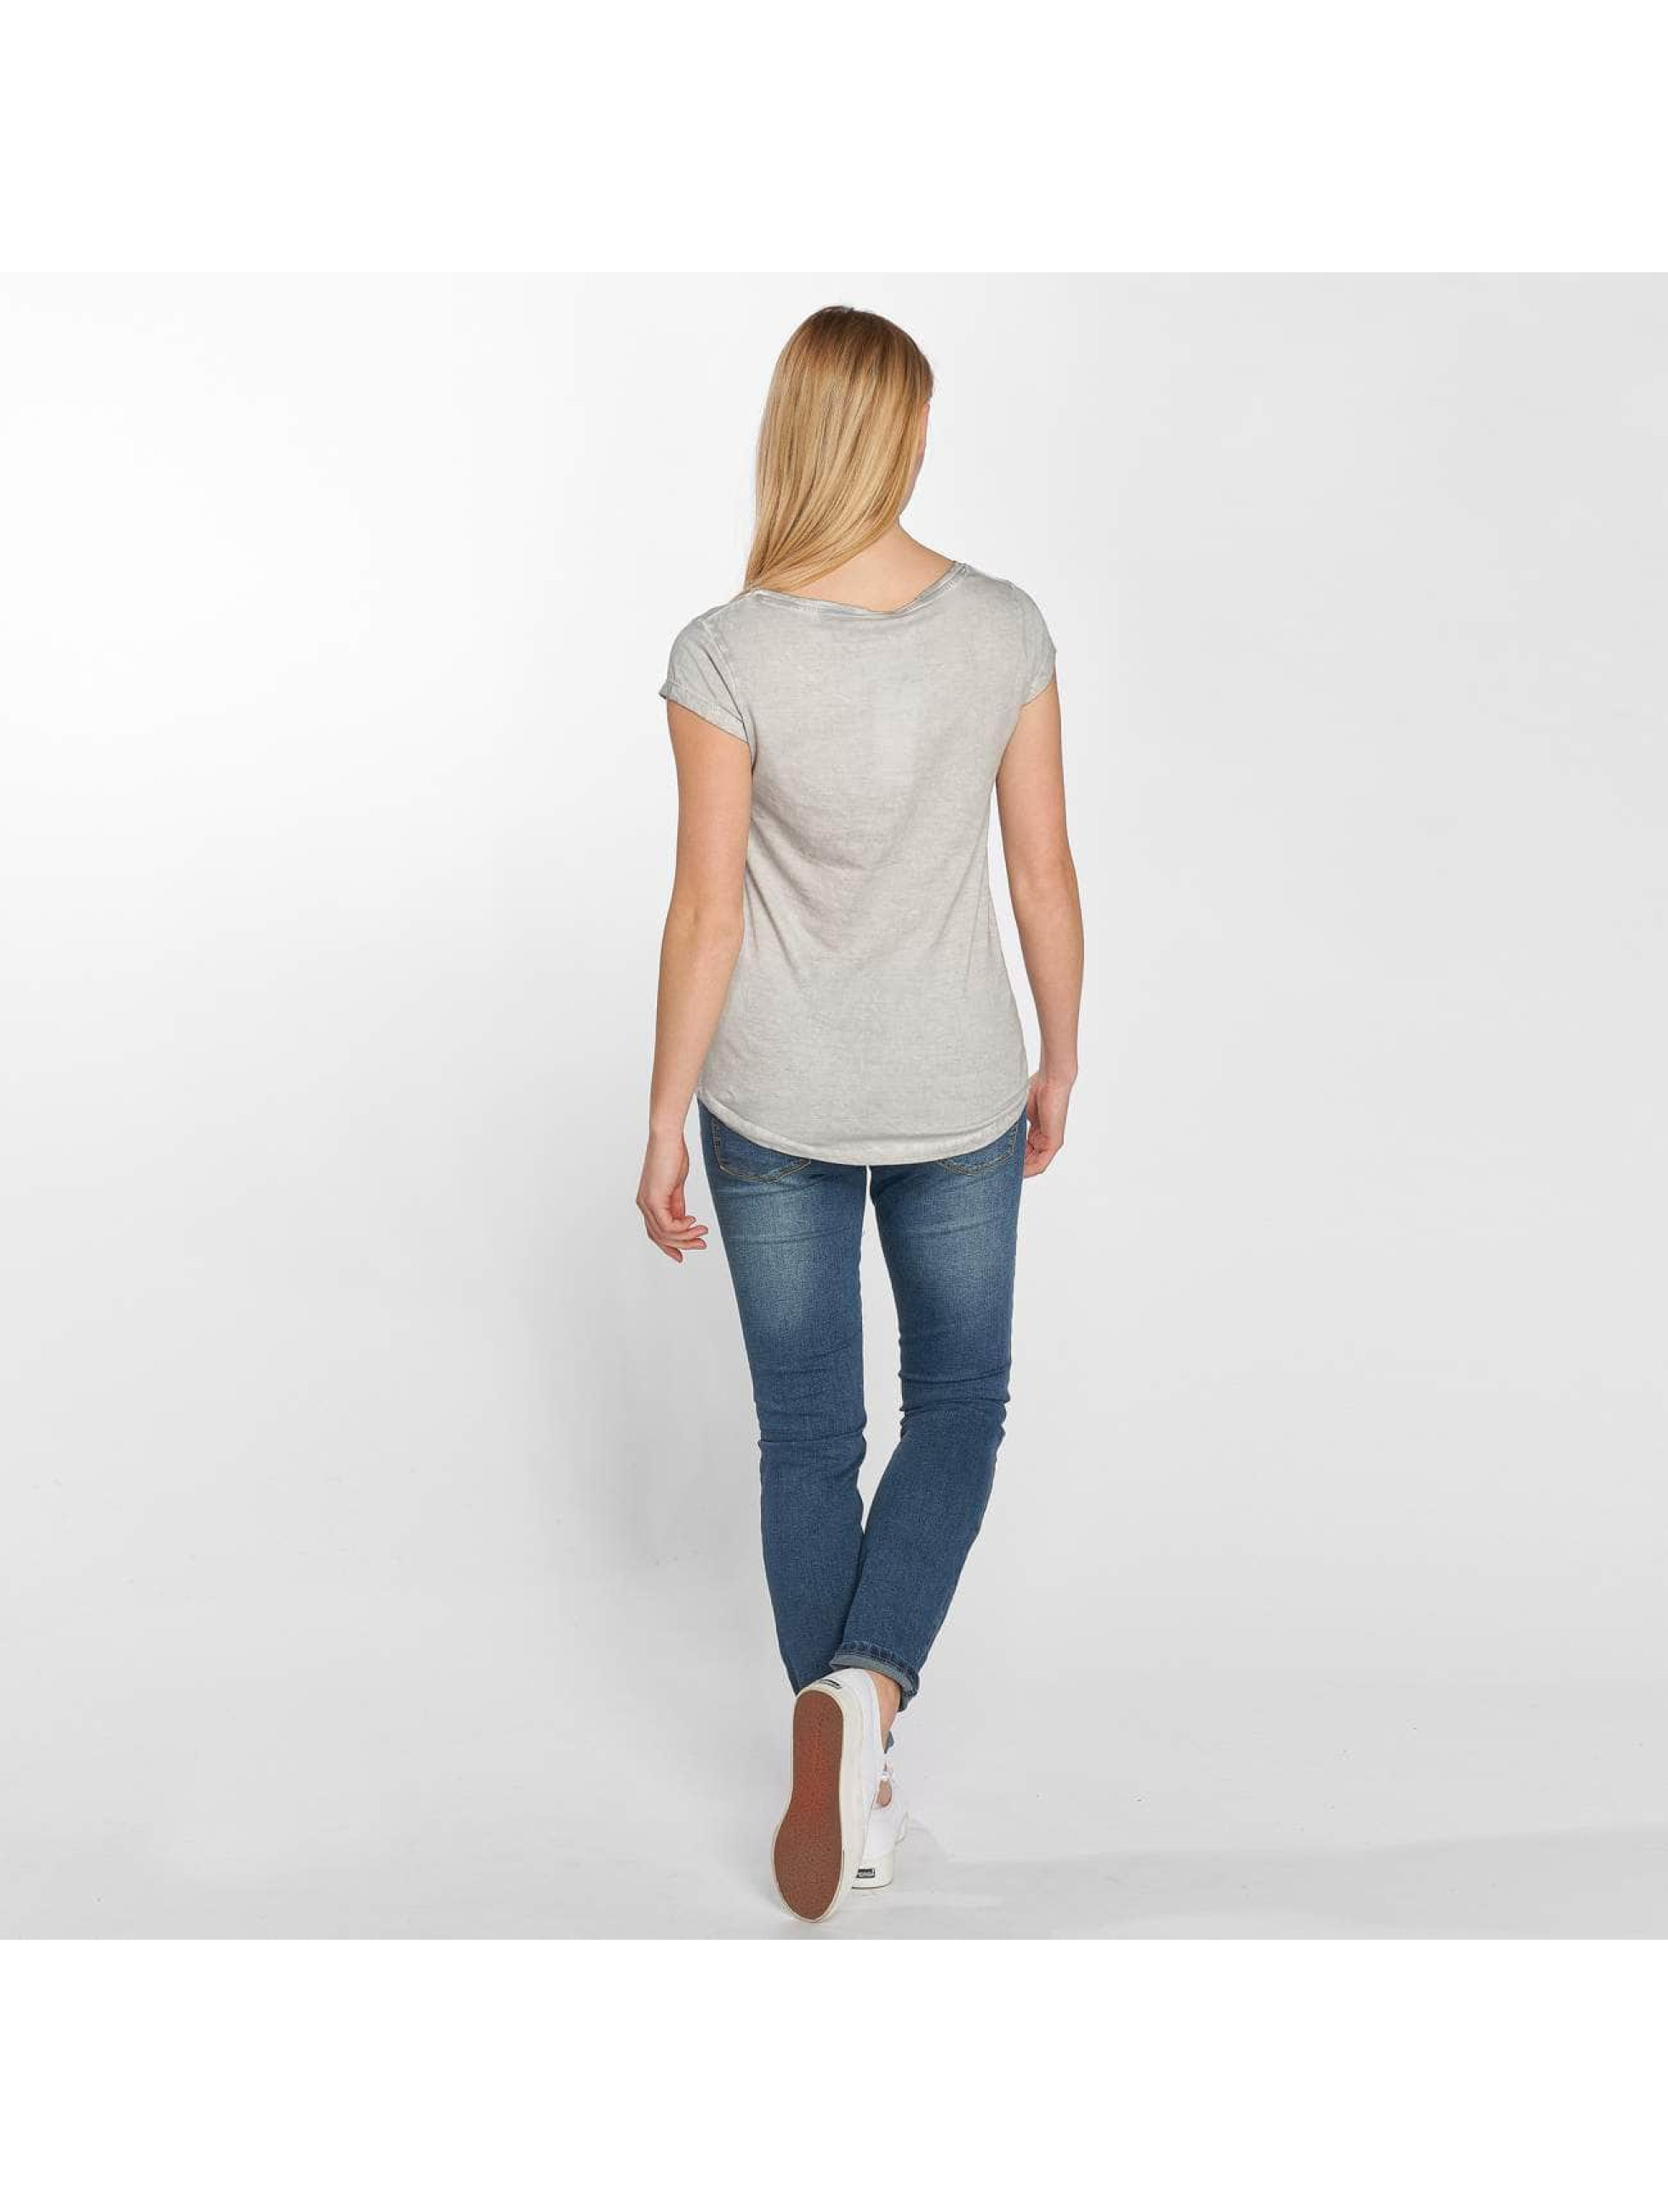 Sublevel T-Shirt PARIS grau